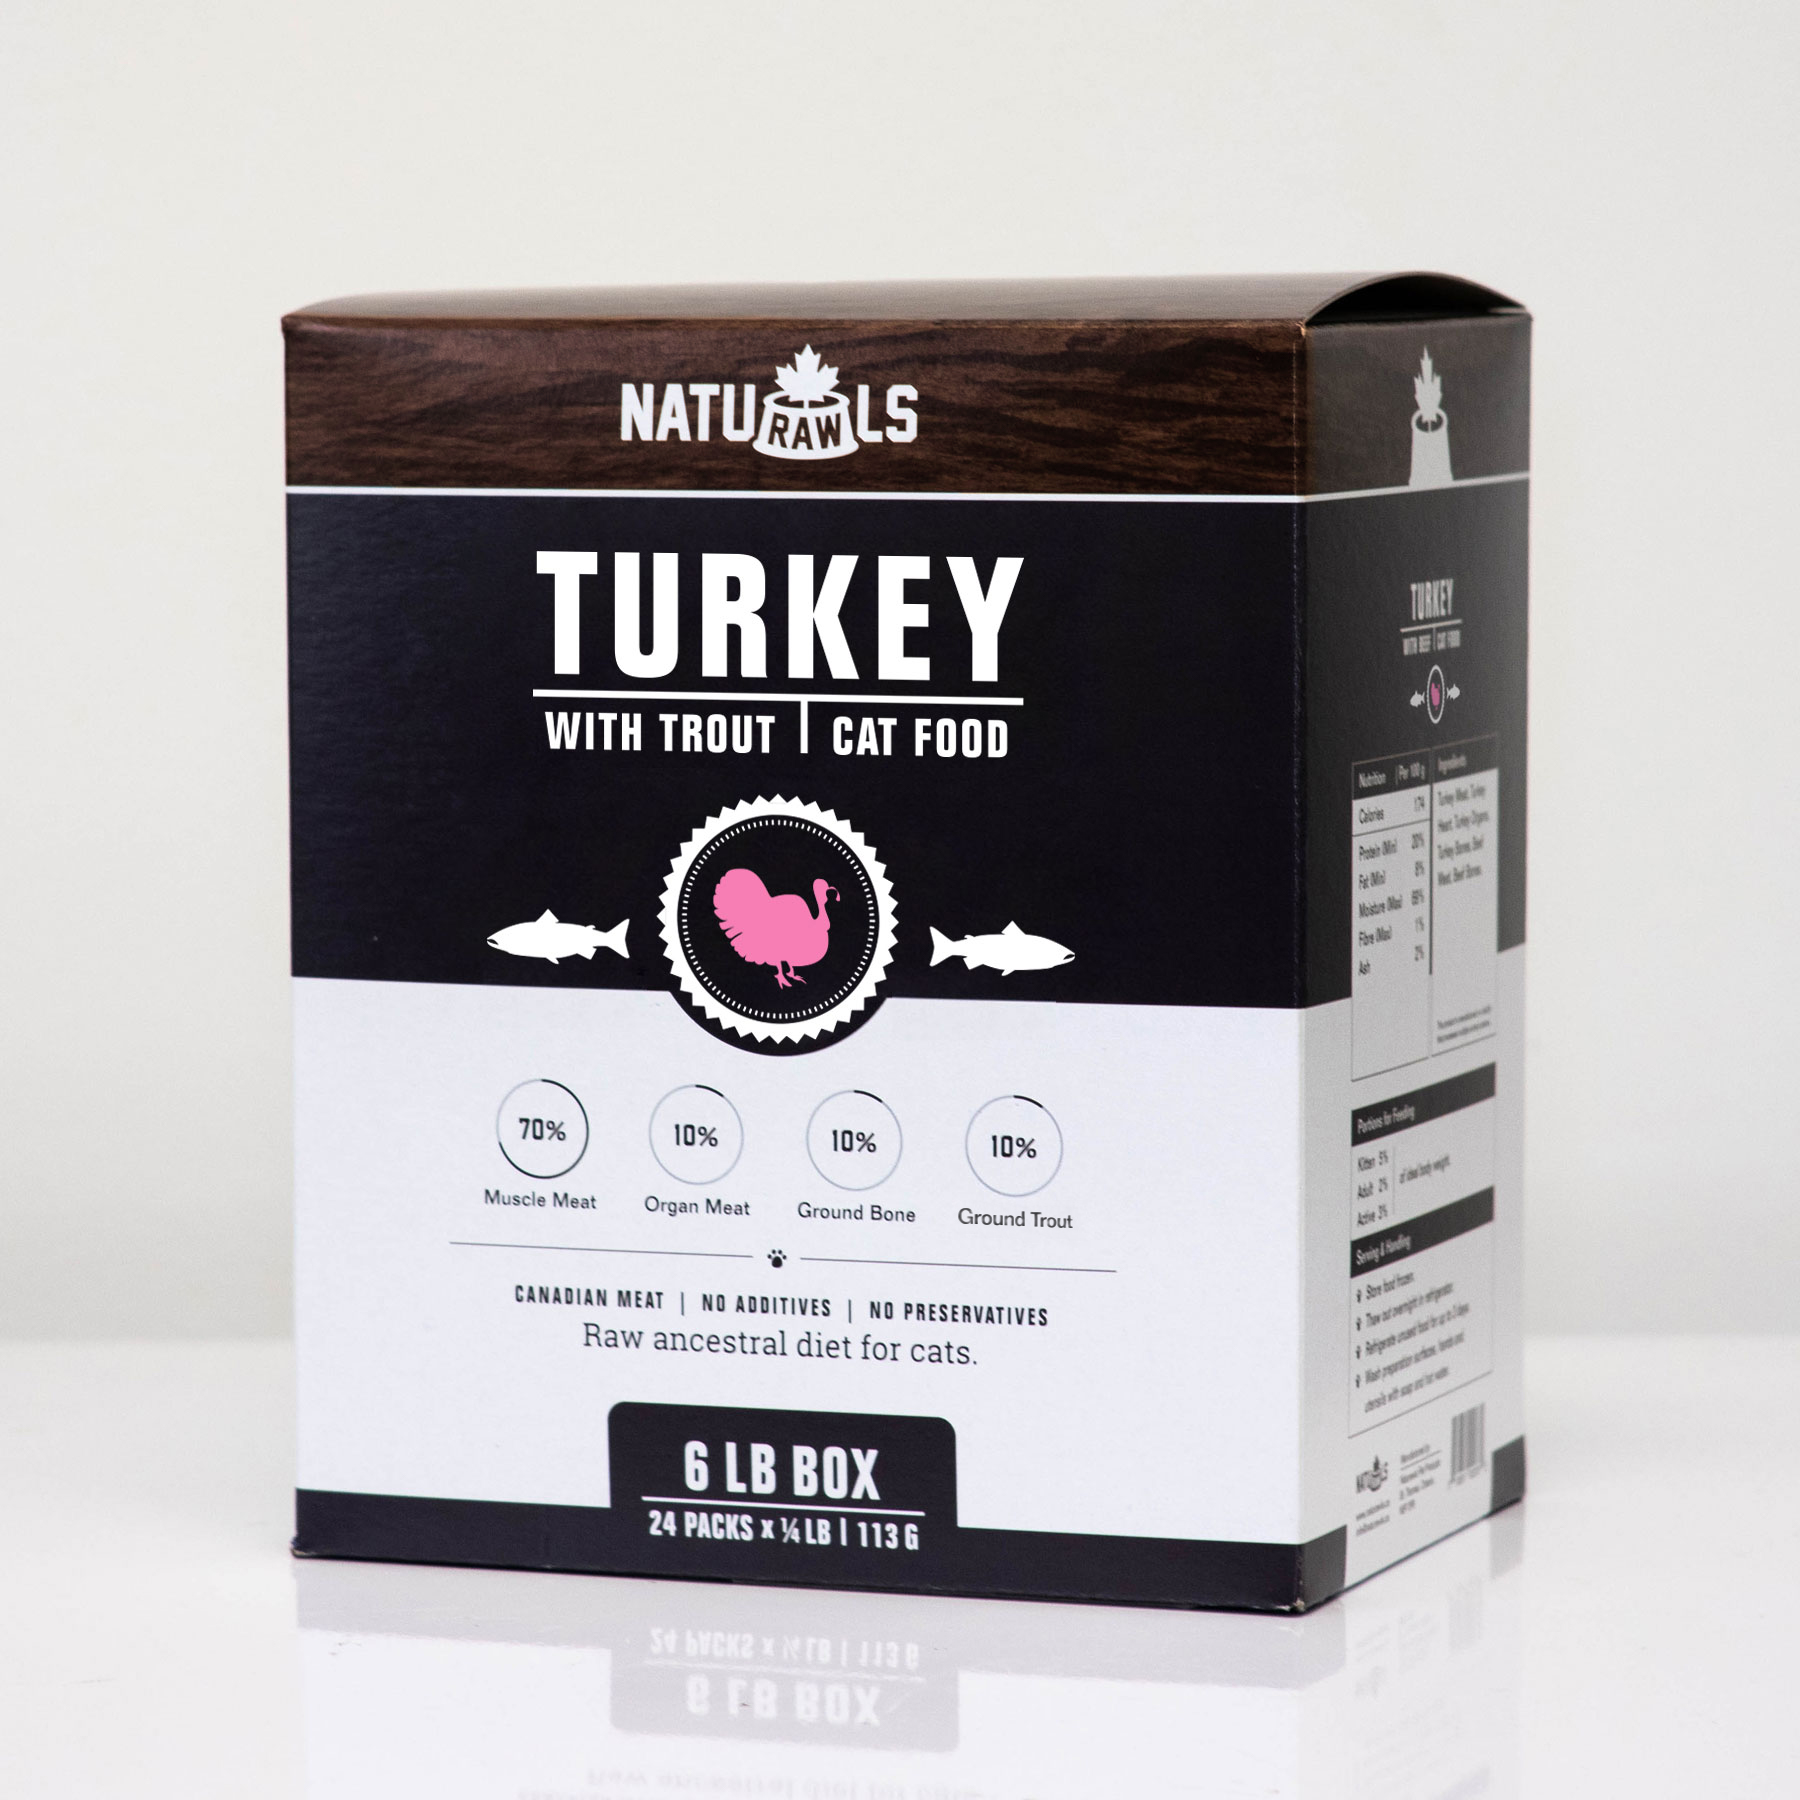 Naturawls Turkey with Trout Raw Cat Food Image